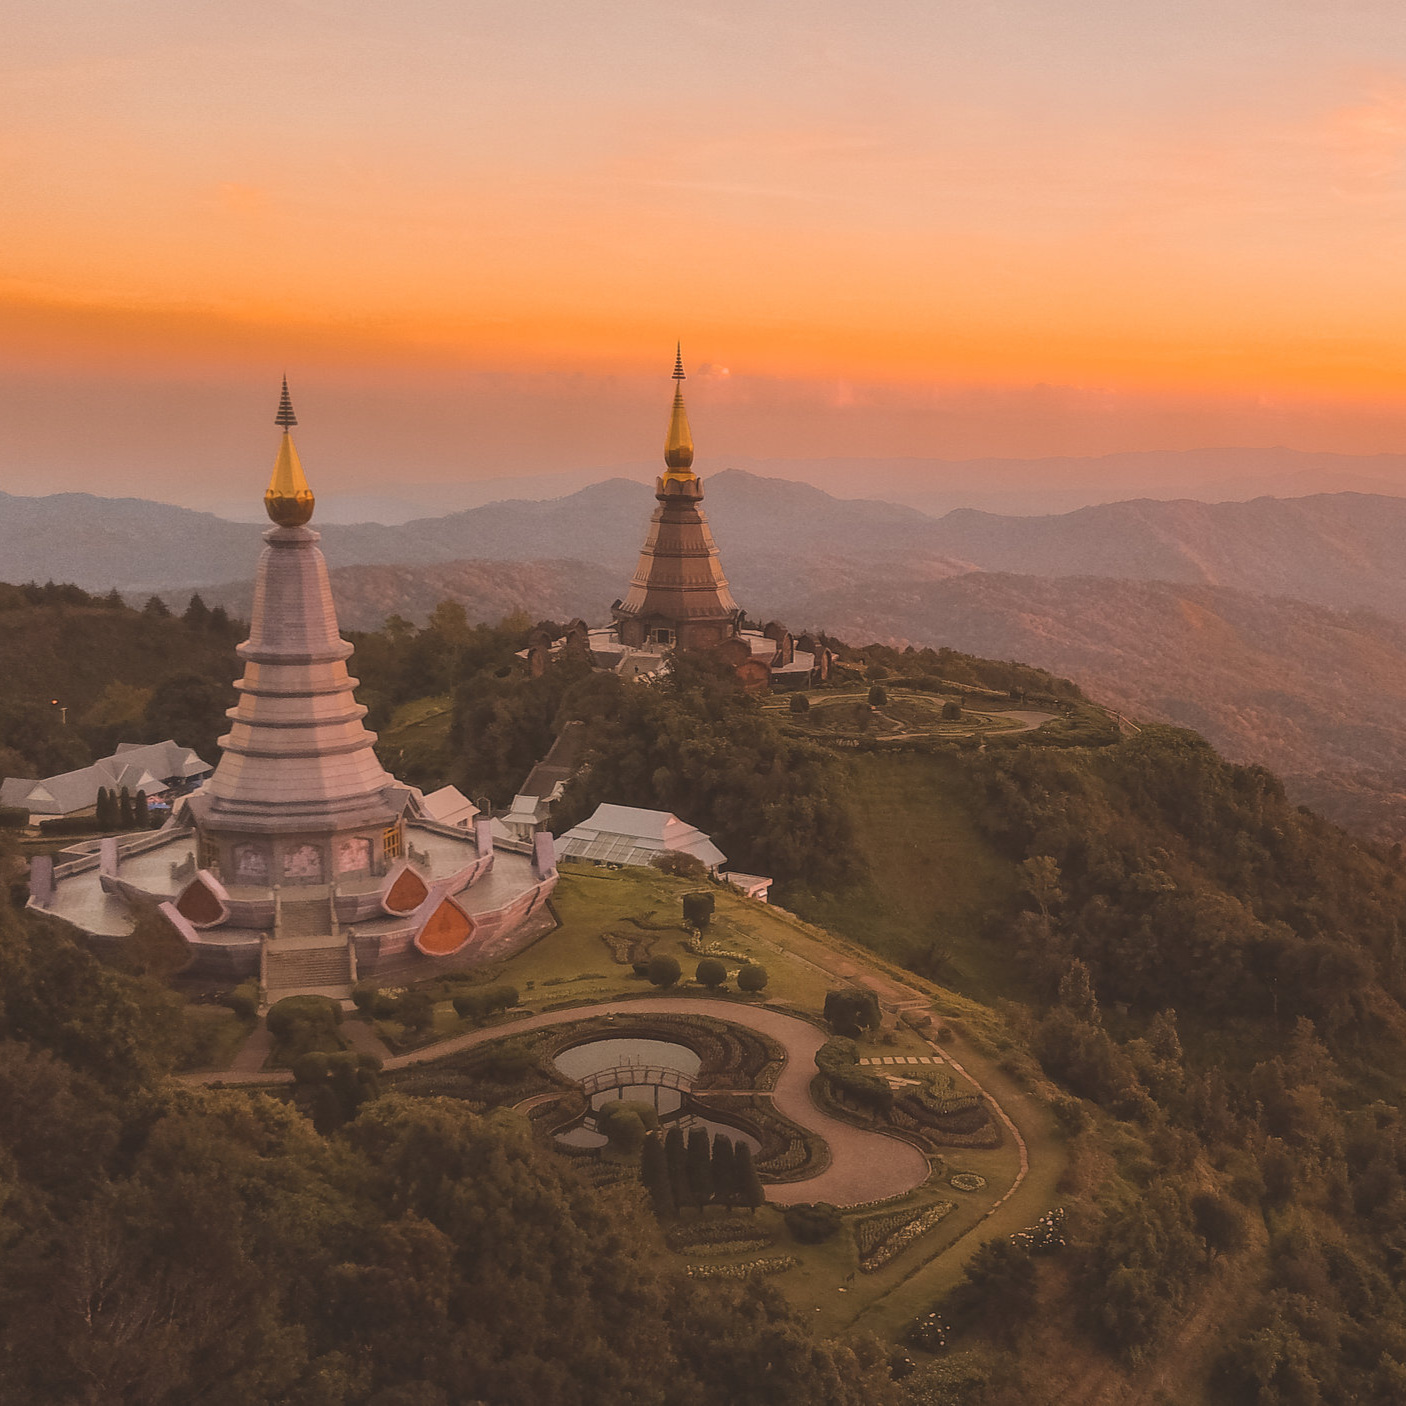 thailand voyage of discovery - late 2019 / early 2020 -